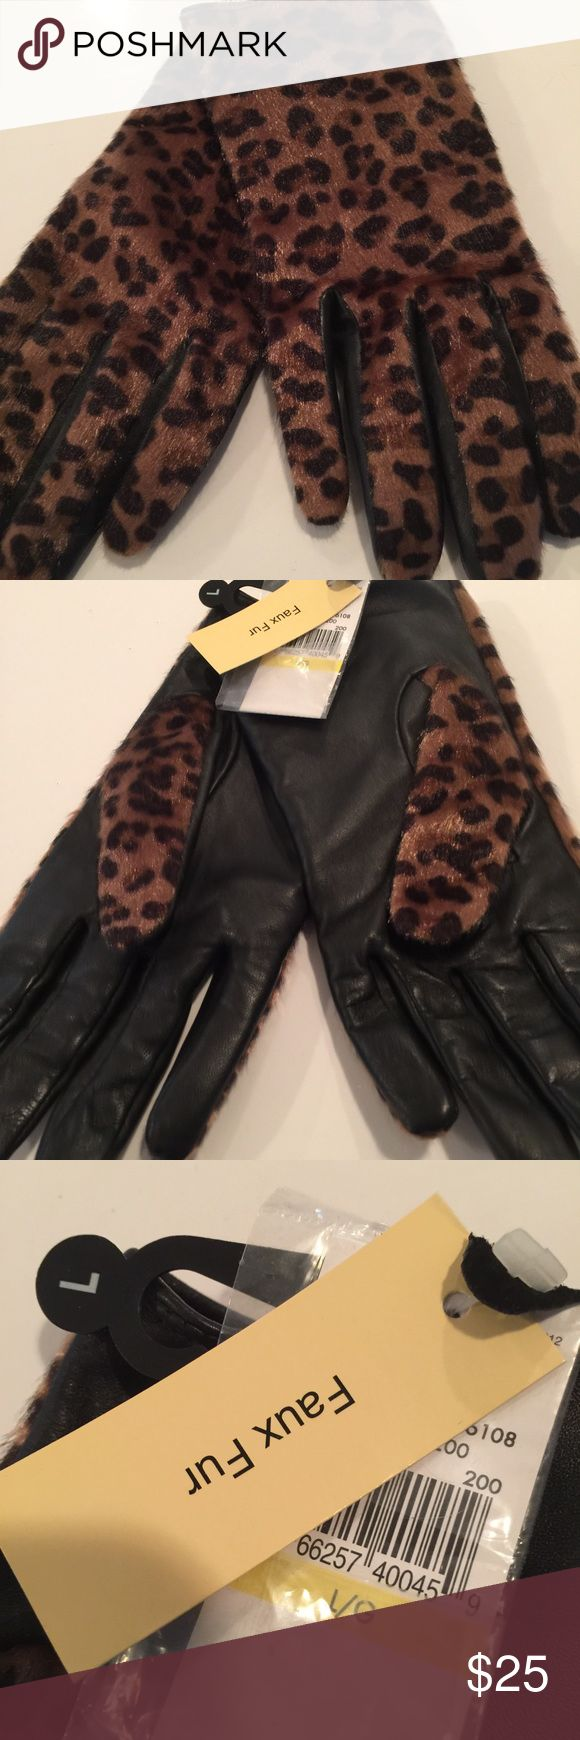 Leather and faux fur gloves size L This is a pair of van Hausen leather and faux fur gloves size large. They are brand-new with tags and never worn. They are listed as size large but I believe they could be worn by just about any size hand. no trades but reasonable offers considered Van Hausen Accessories Gloves & Mittens